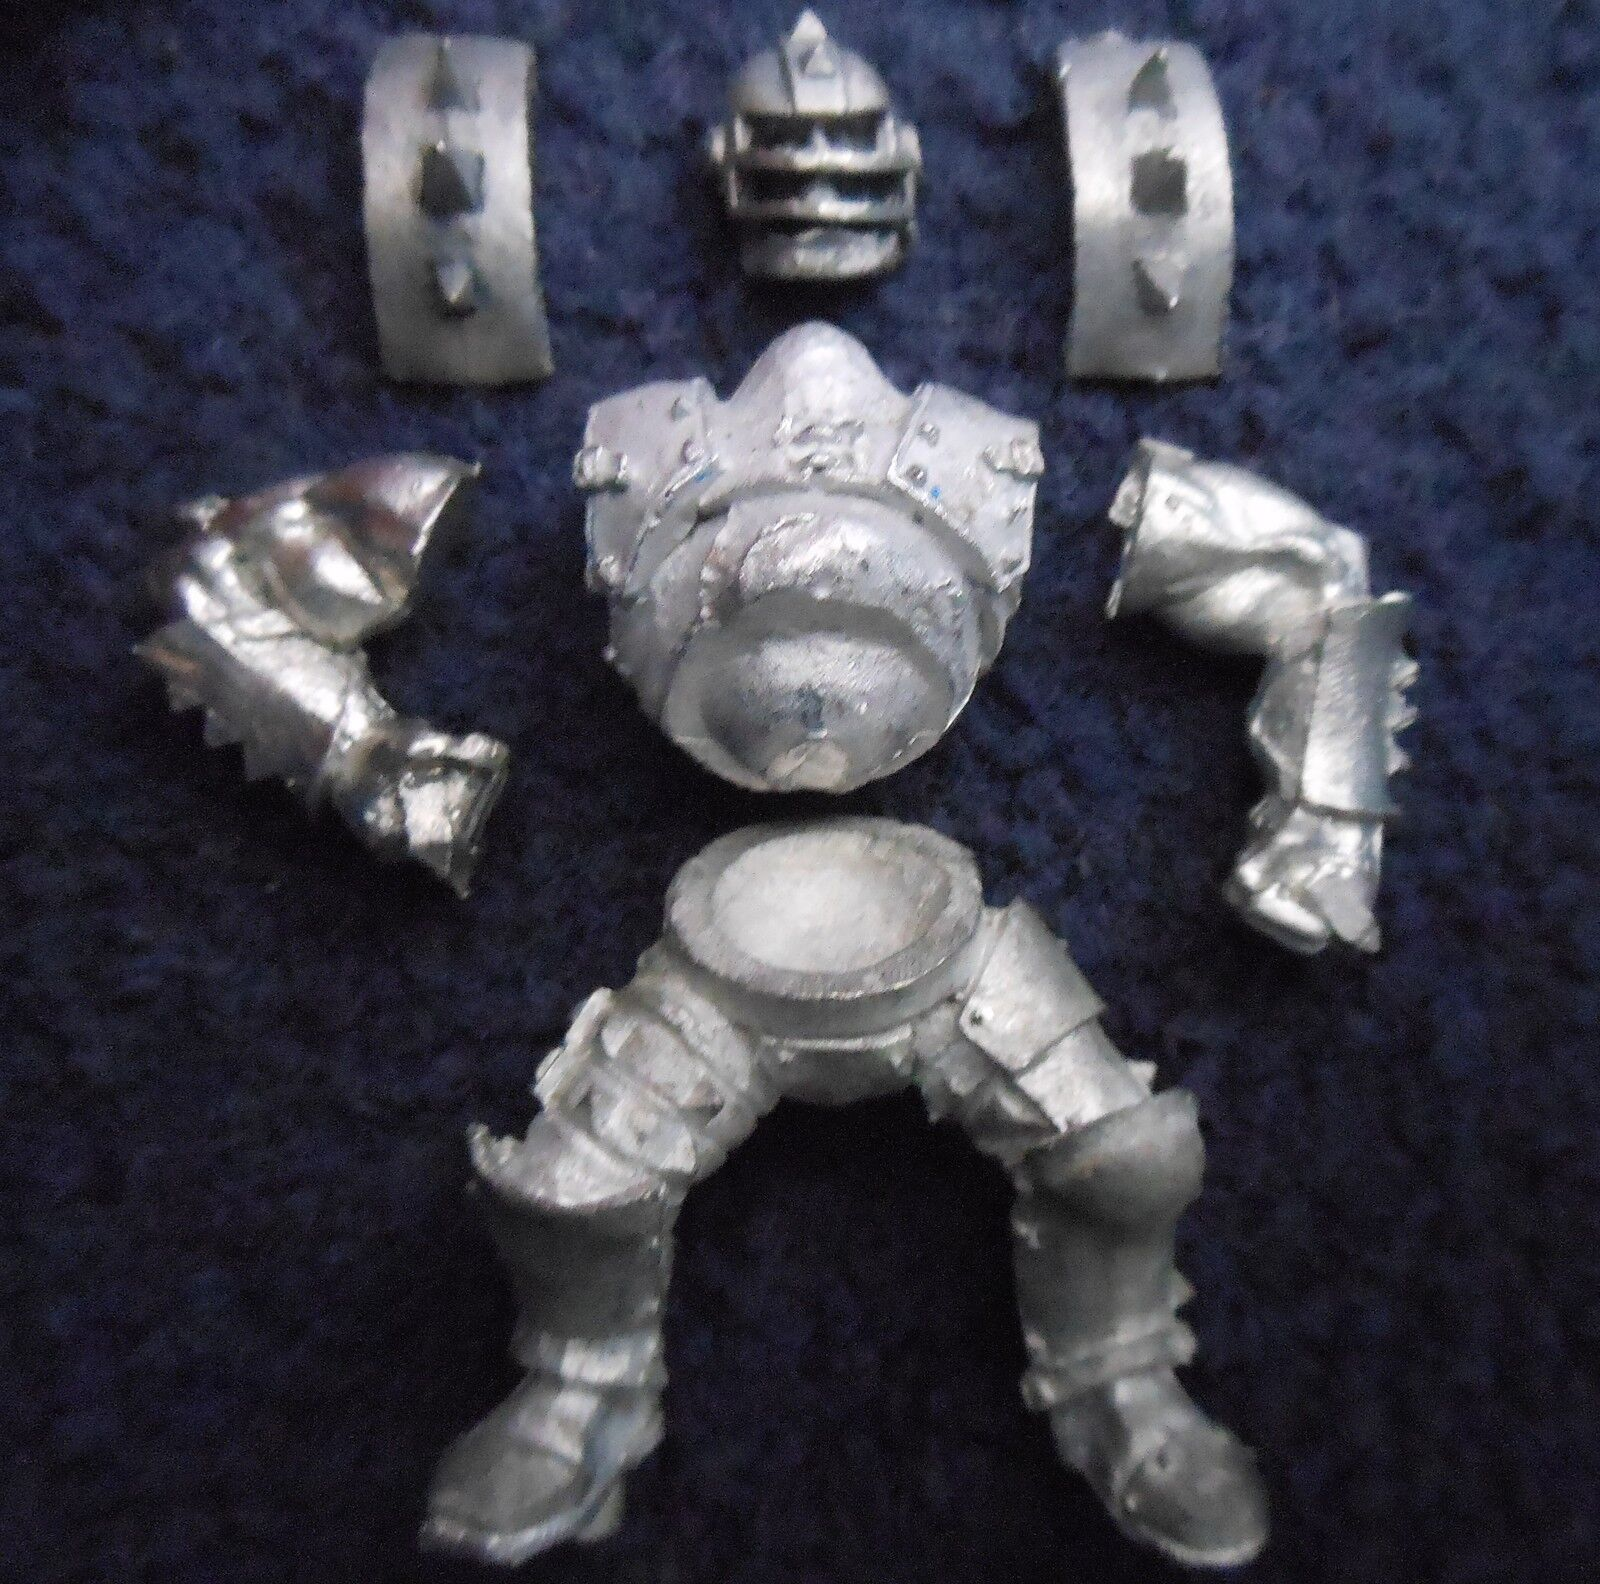 2002 Ogre 4 Bloodbowl 5th Edition Big Guy Citadel Fantasy Football Team Ogor GW